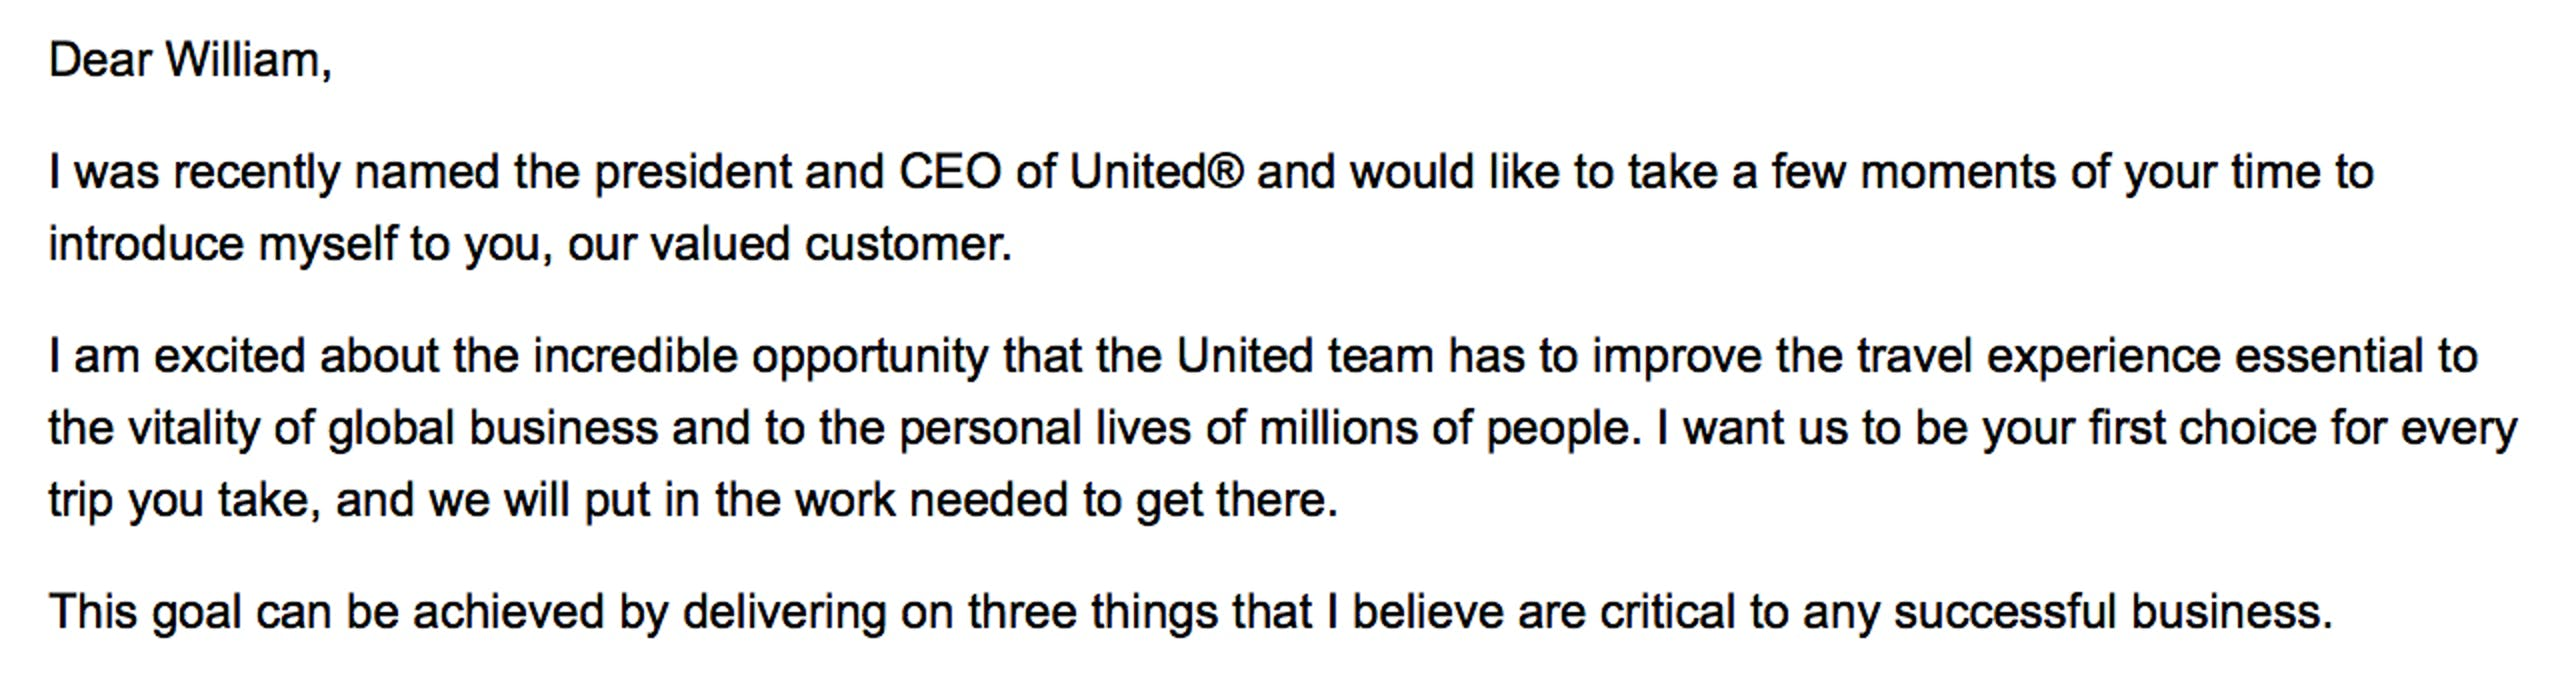 Email from United CEO